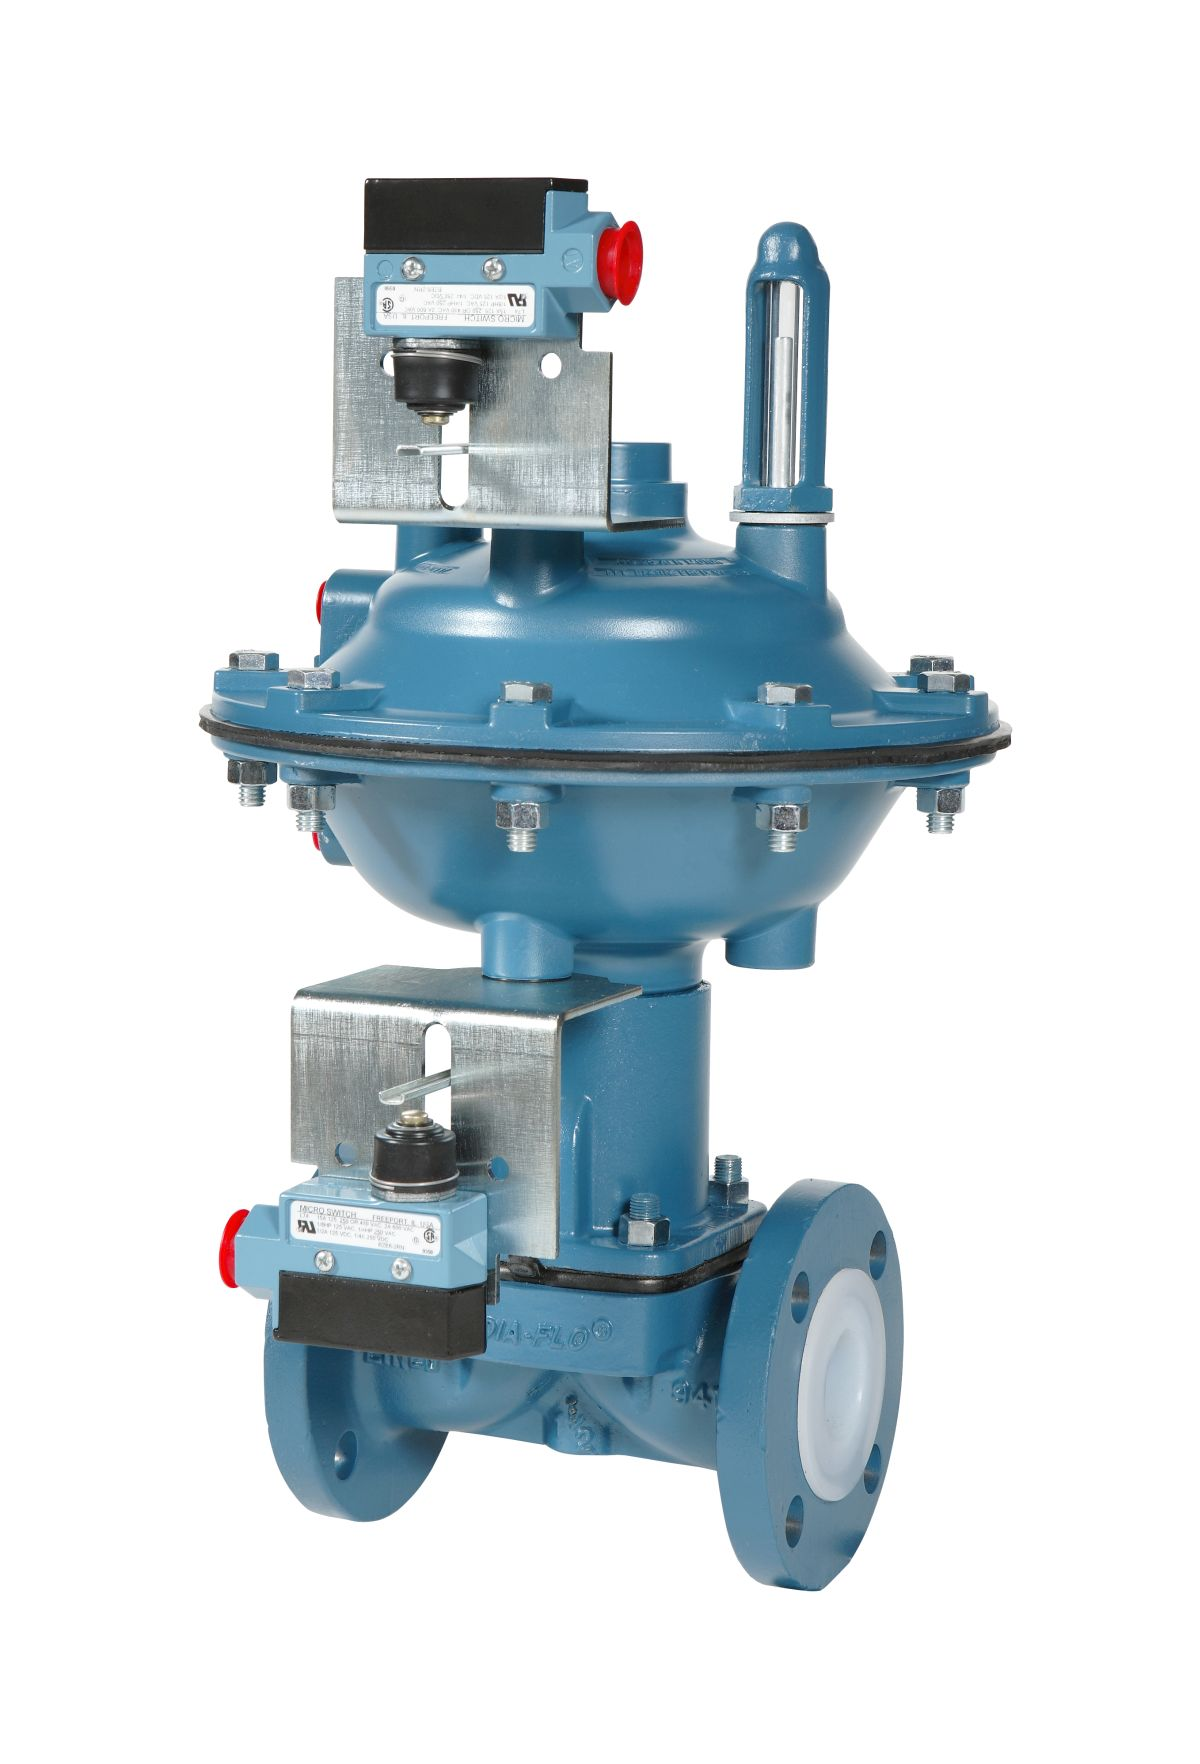 Curtiss wright nuclear brands enertech valves itt engineered typical plant applications ccuart Gallery